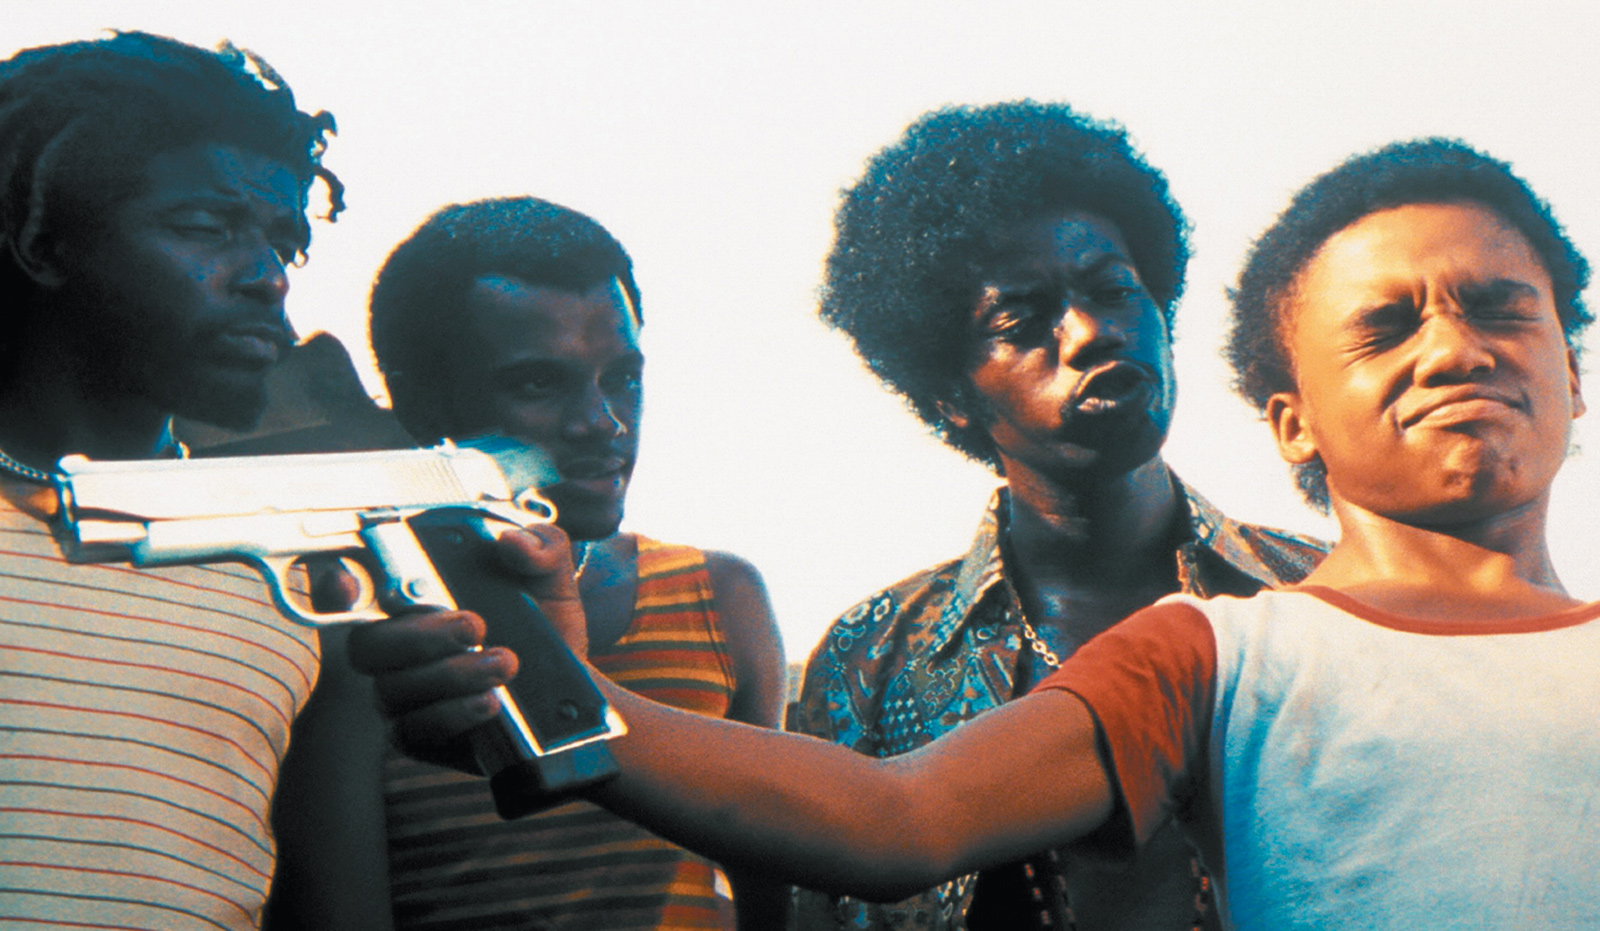 A scene from the film City of God (2002), based on the novel by Paolo Lins